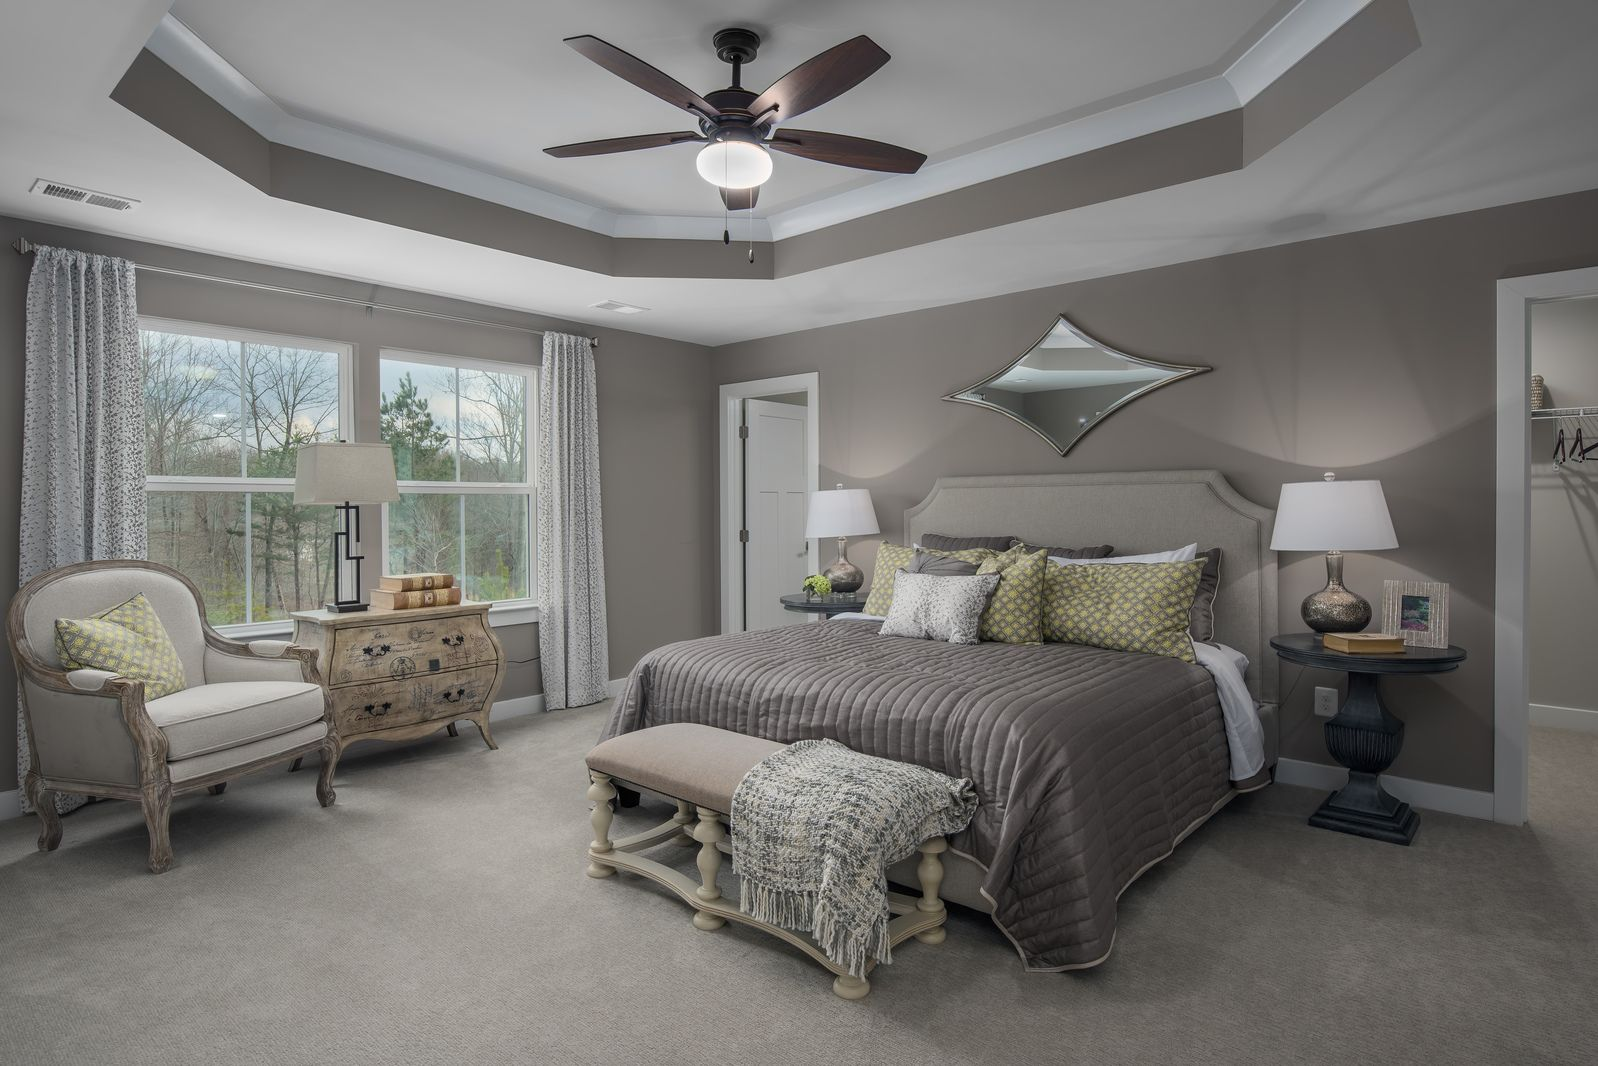 Bedroom featured in the Landon By Ryan Homes in Washington, MD